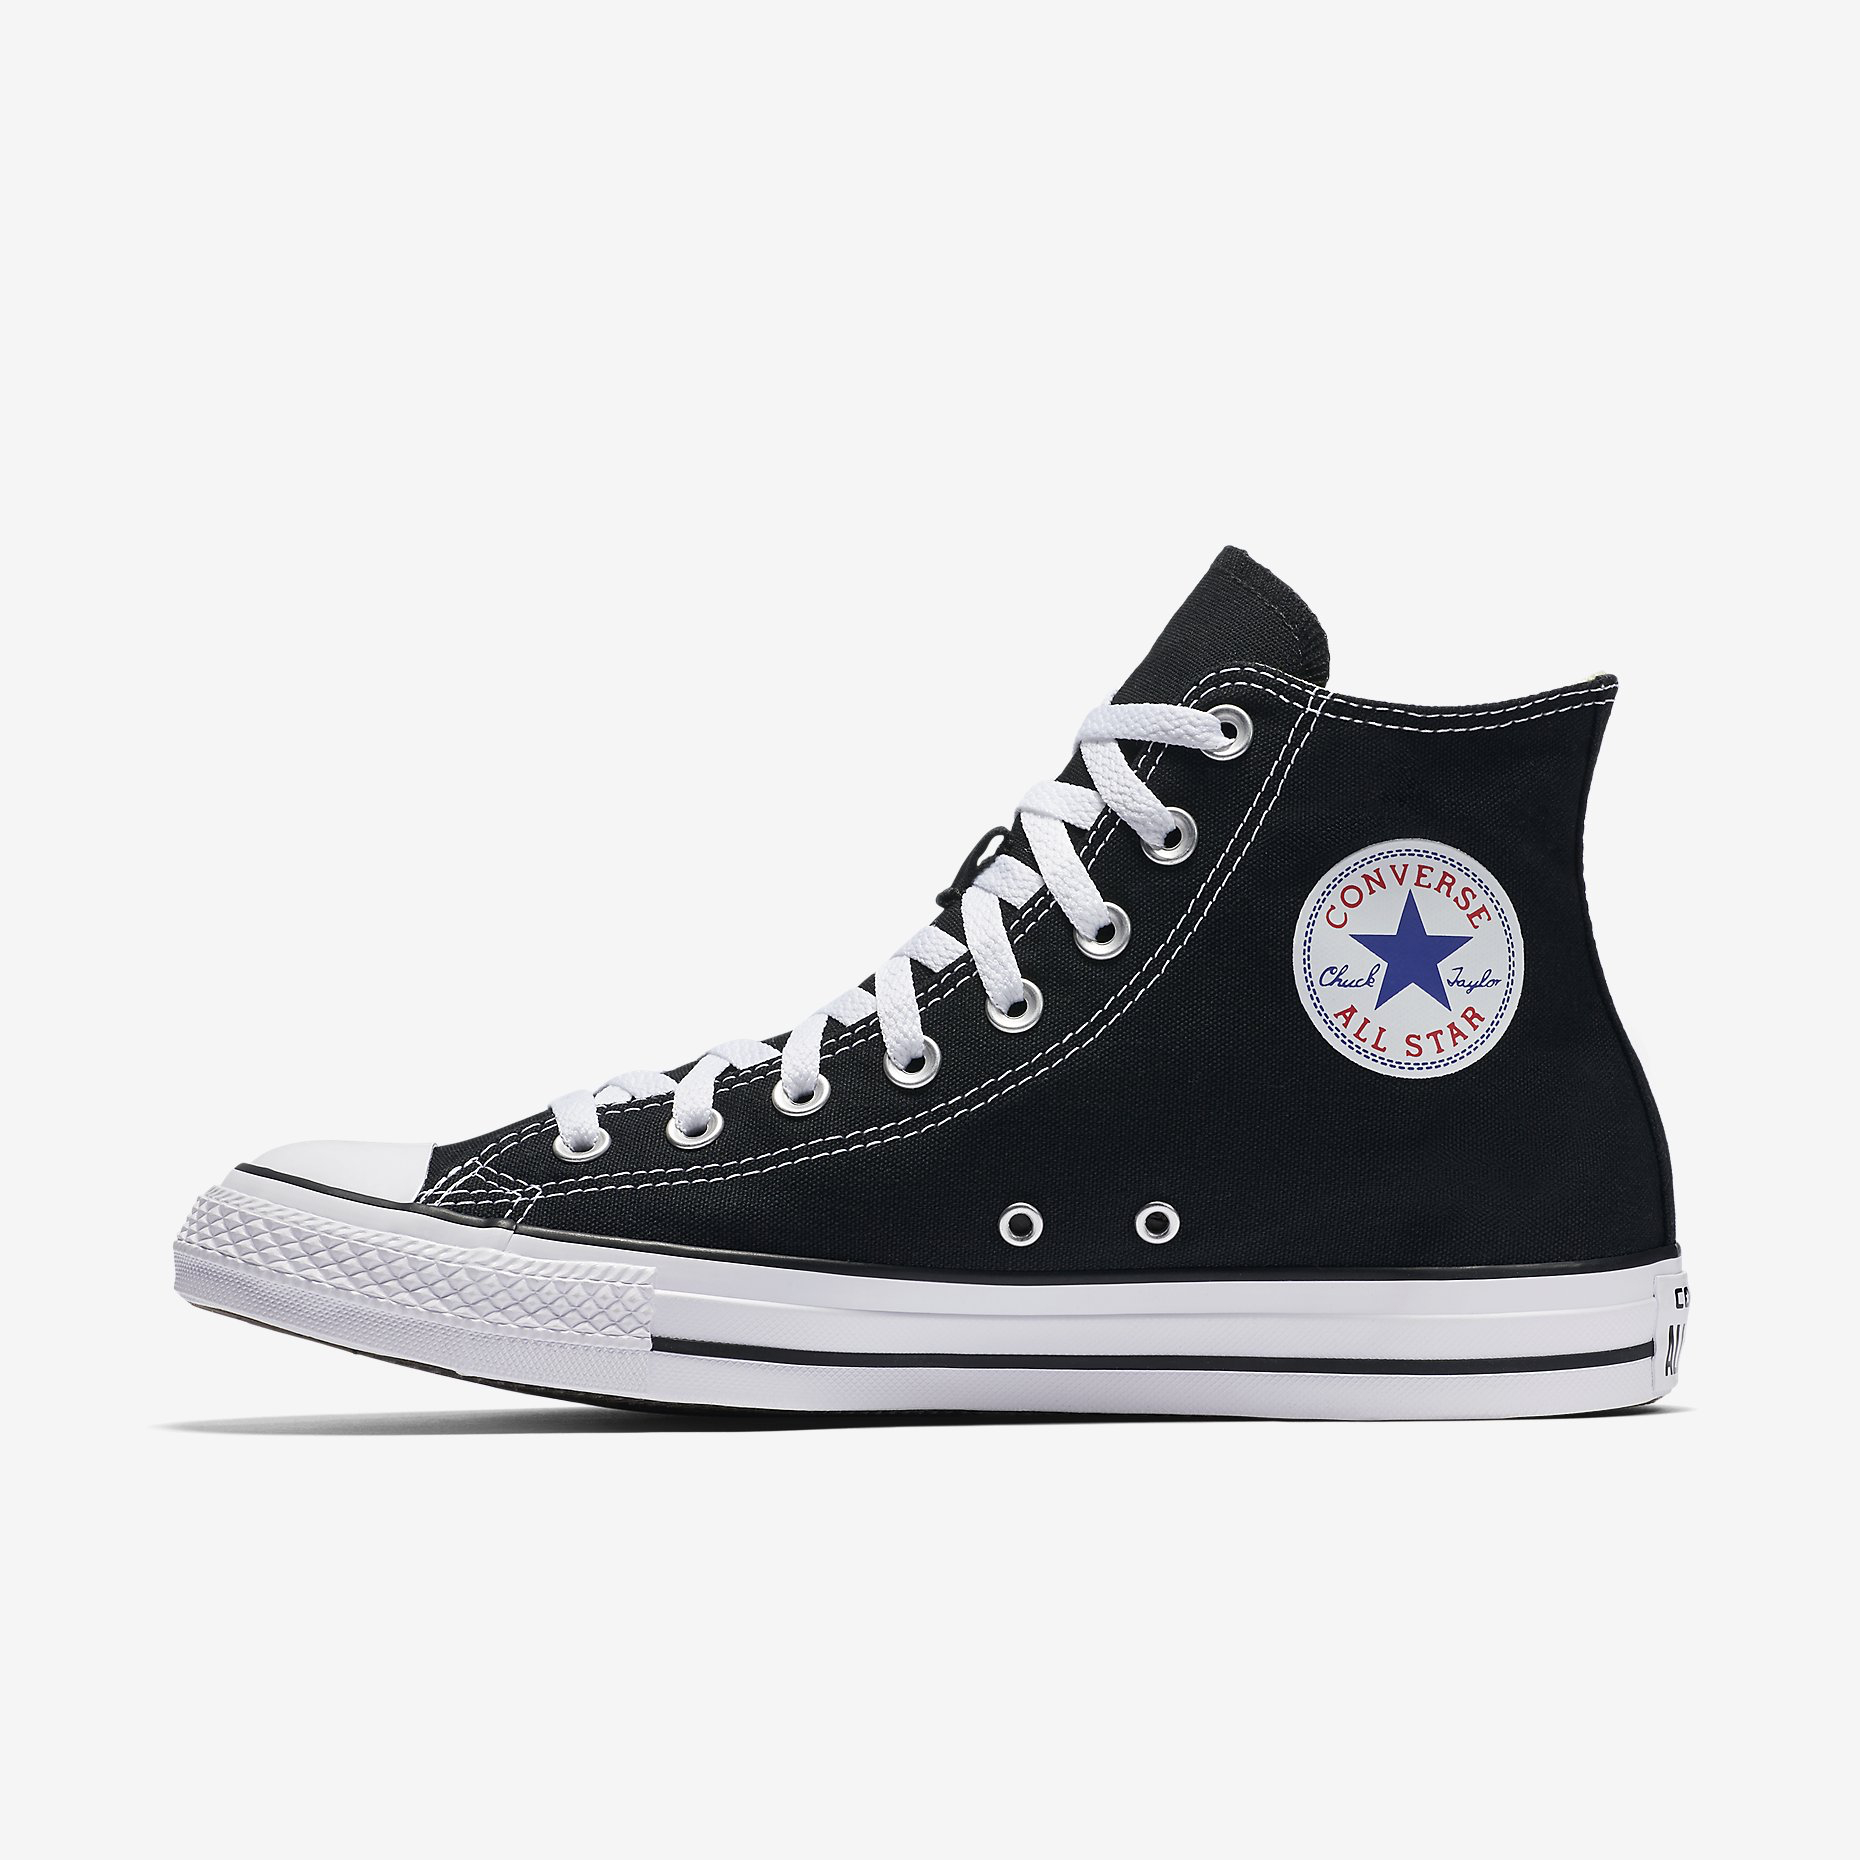 5b9f81fc43f3 Converse Chuck Taylor All Star Womens High Top Black in 2019